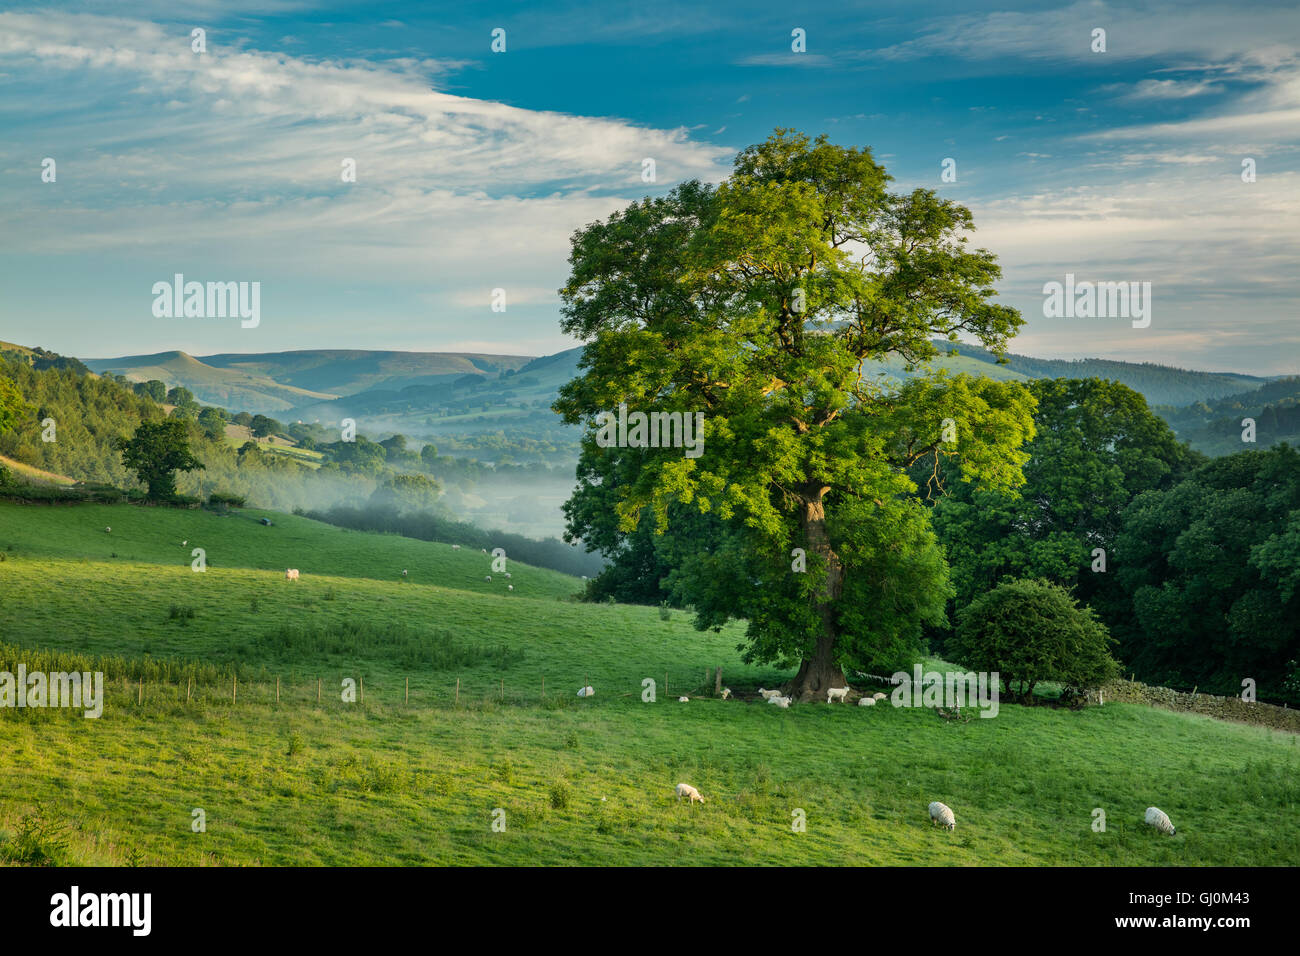 Edale at dawn, Peaks District National Park, Debyshire, England - Stock Image